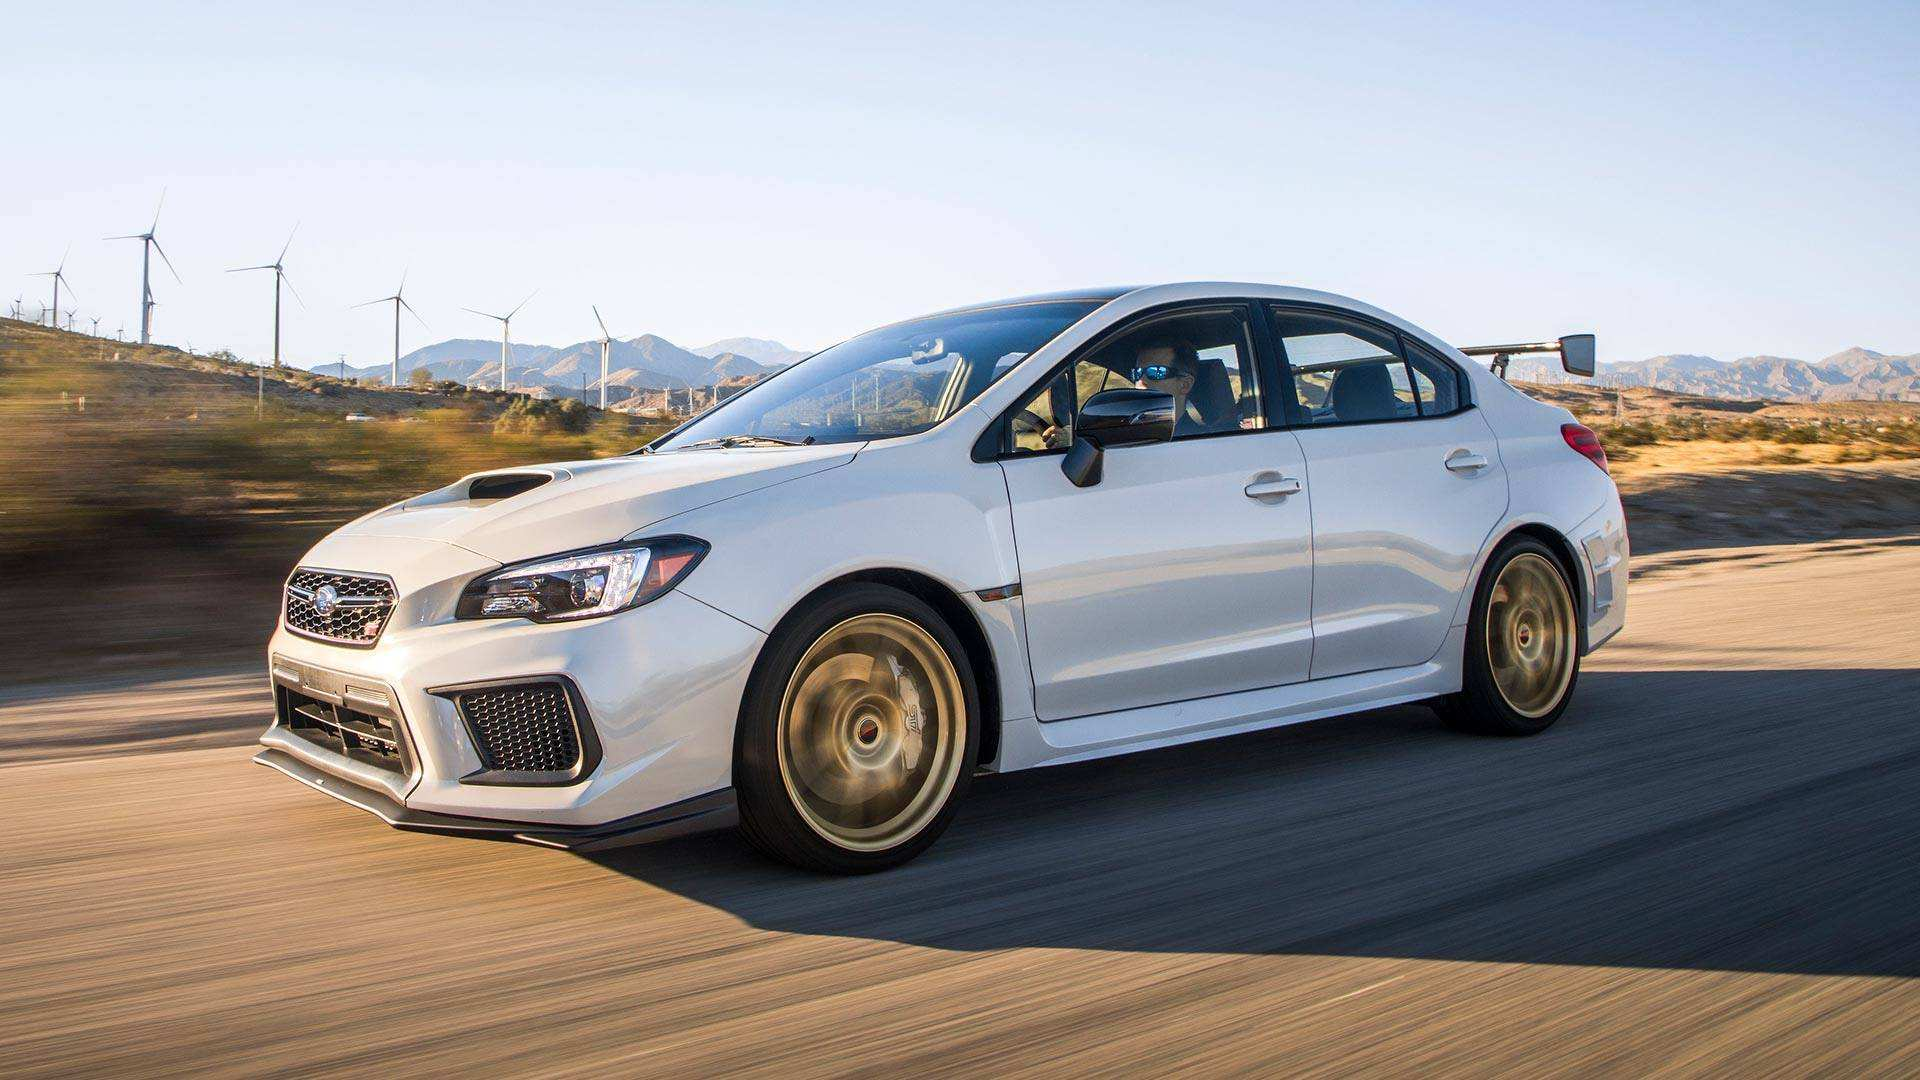 93 New The 2019 Subaru Wrx Quarter Mile Price And Review Performance and New Engine for The 2019 Subaru Wrx Quarter Mile Price And Review